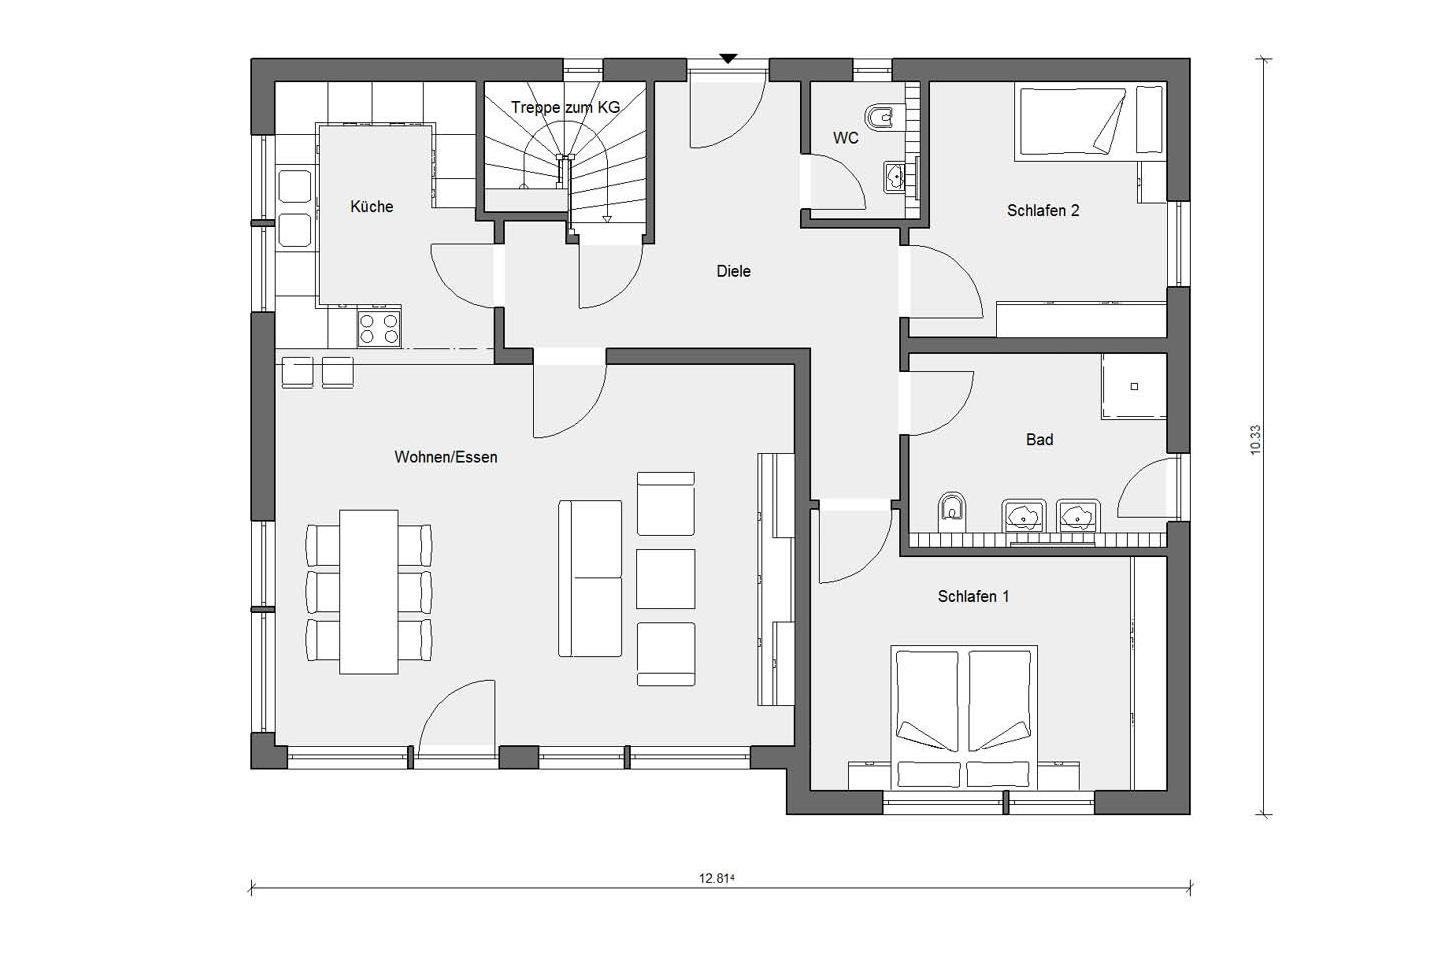 Floor plan ground floor E 10-103.1 Bungalow with pitched roof